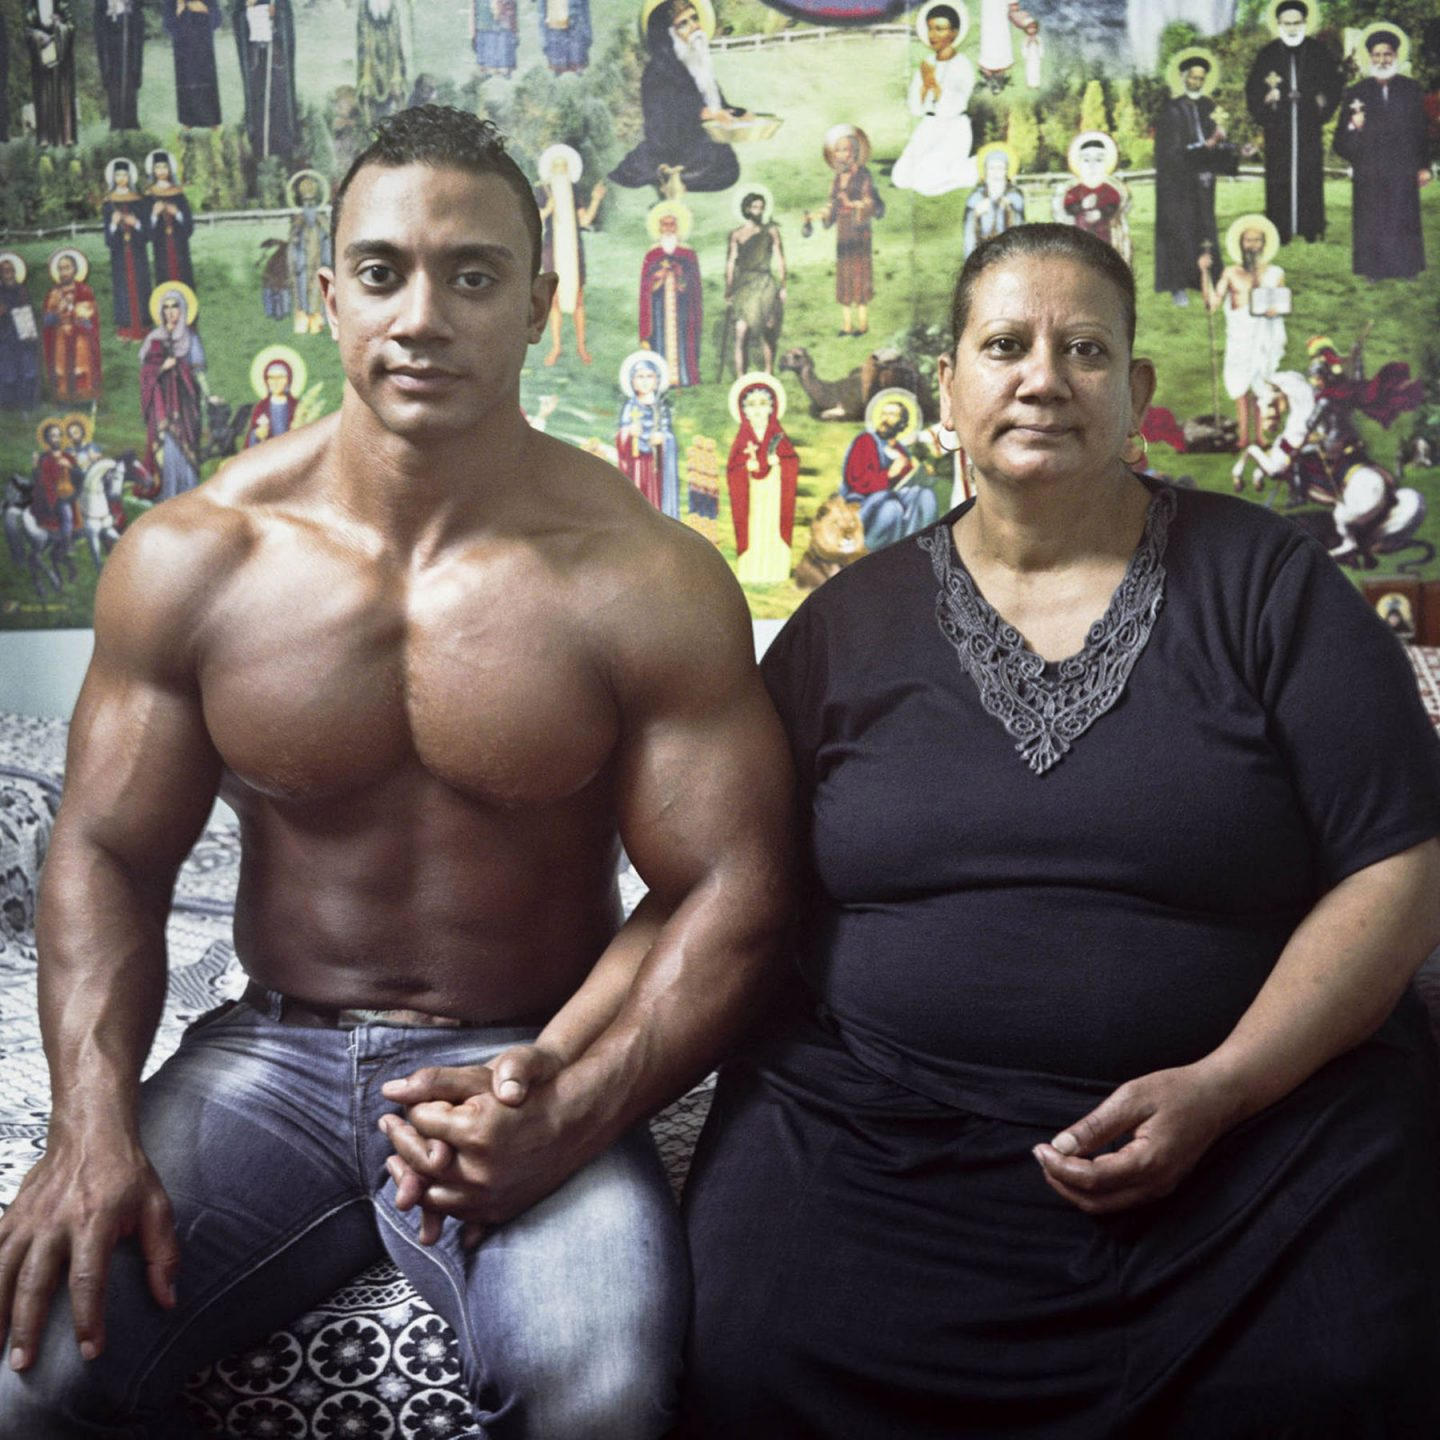 iGNANT-Photography-Denis-Dailleux-Egypt-Mother-And-Son-19